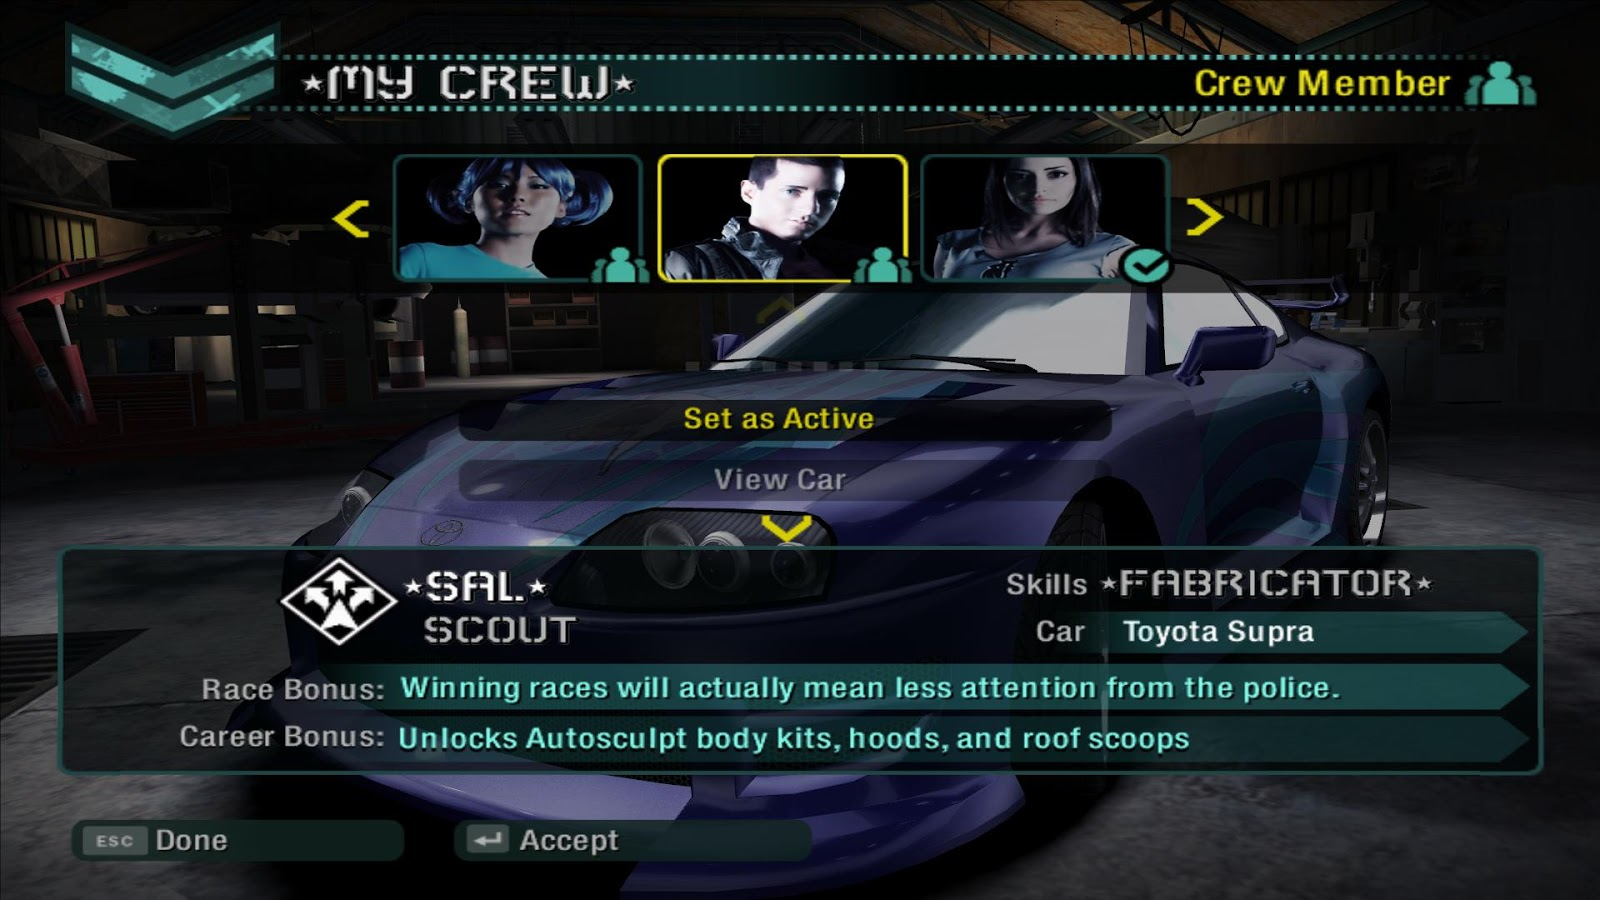 Nfs carbon activate crew members